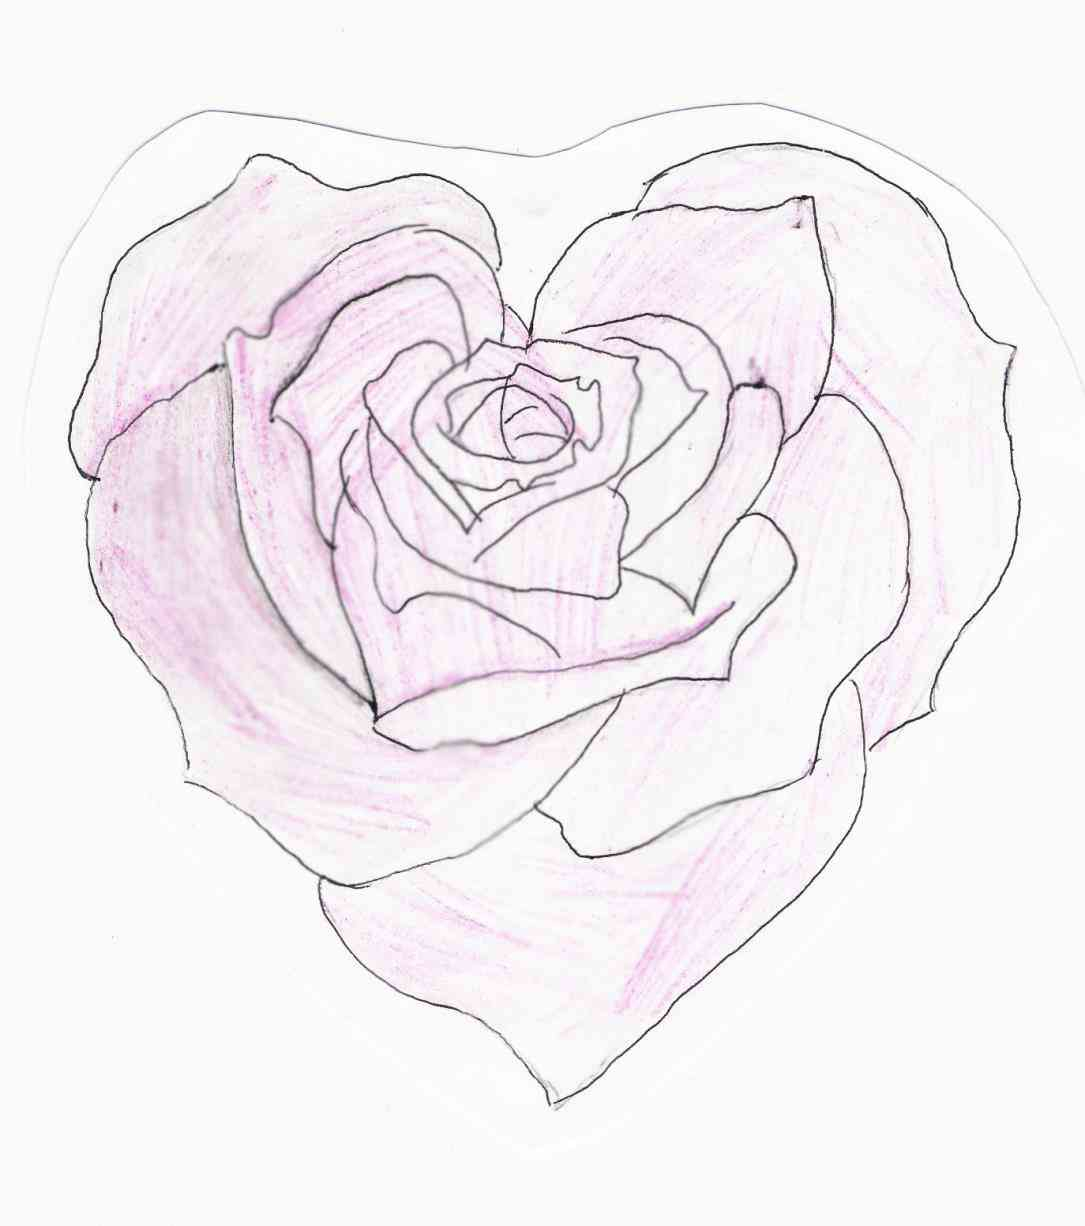 1085x1226 Broken Heart With Rose Drawings In Pencil Broken Heart With Rose